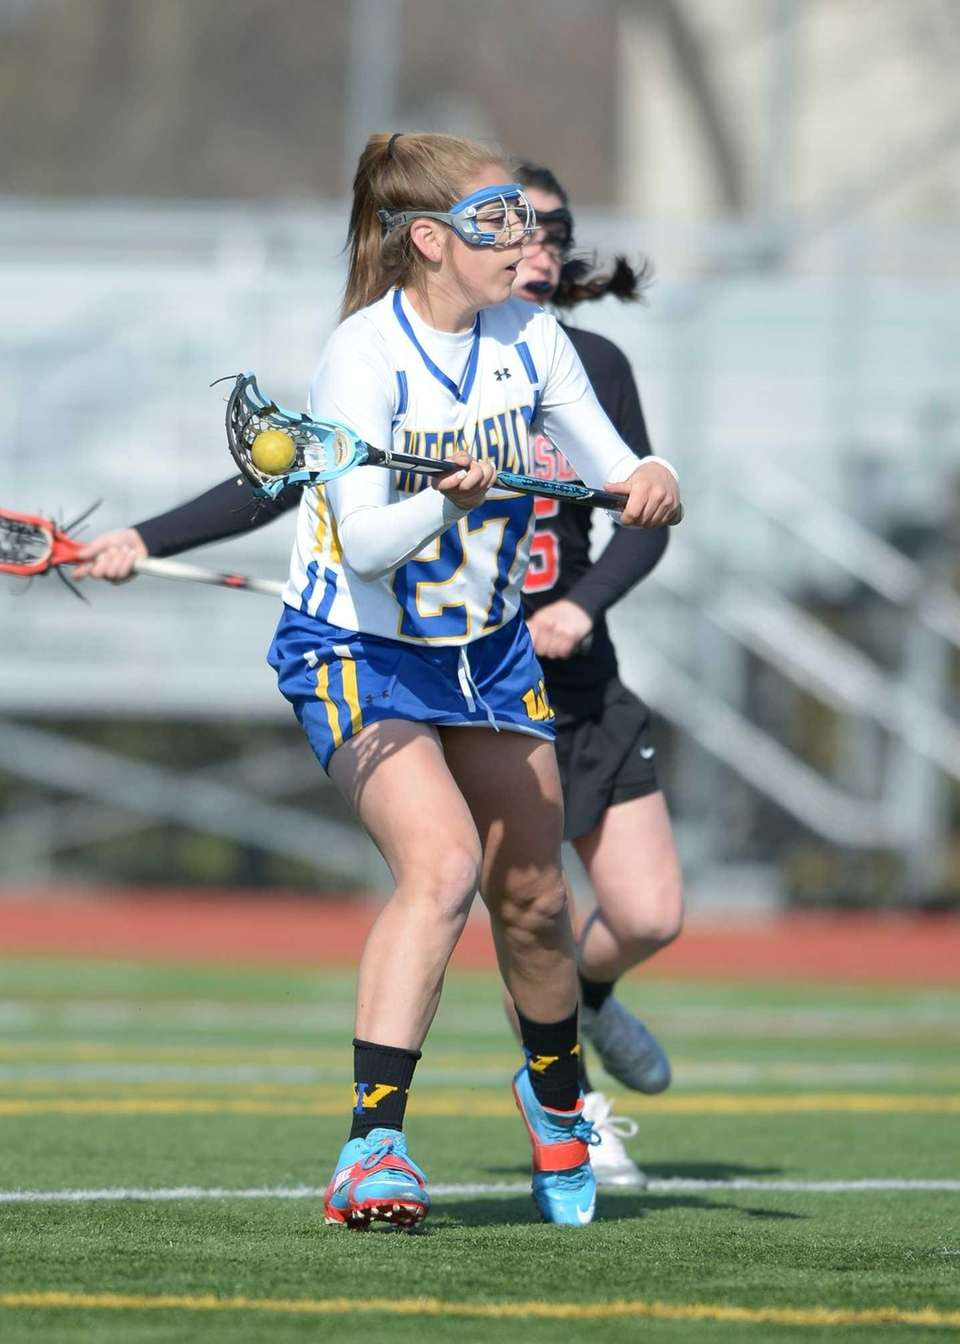 West Islip's Emily Piciullo (27) shoots on goal